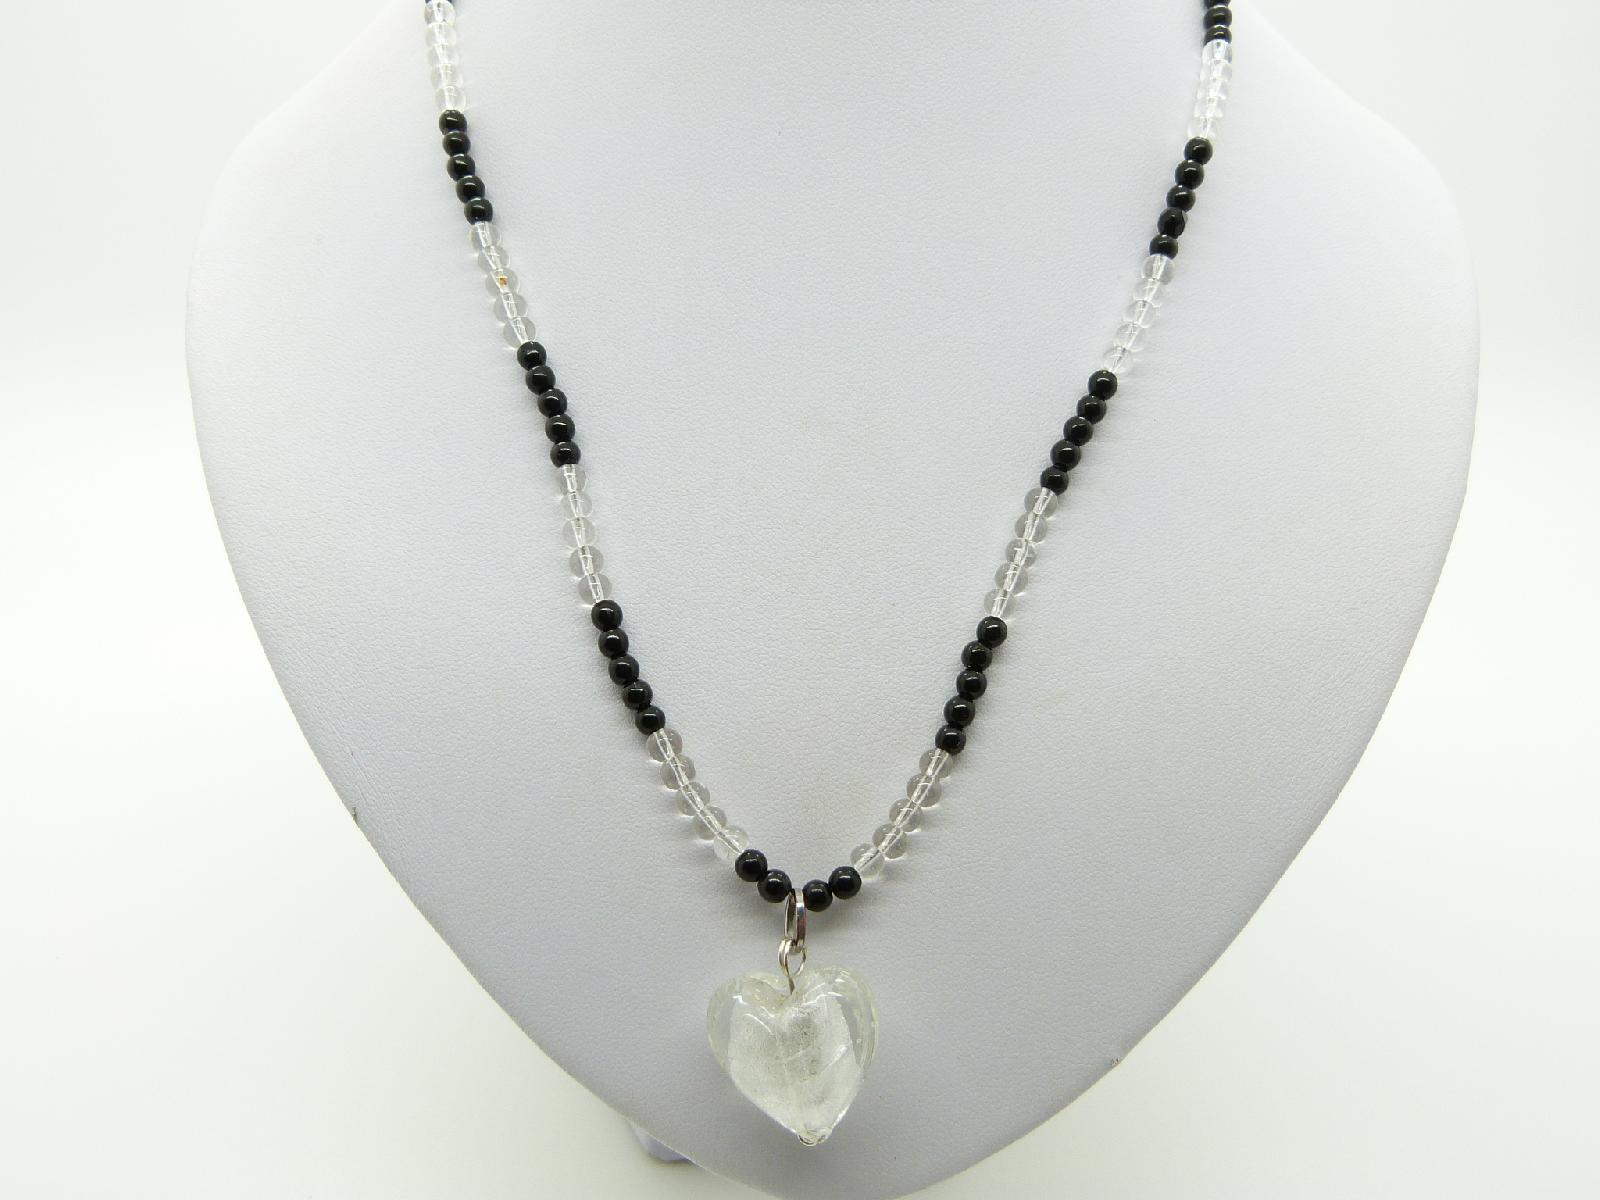 Vintage Redesigned Black and Clear Glass Bead Necklace White Heart Pendant